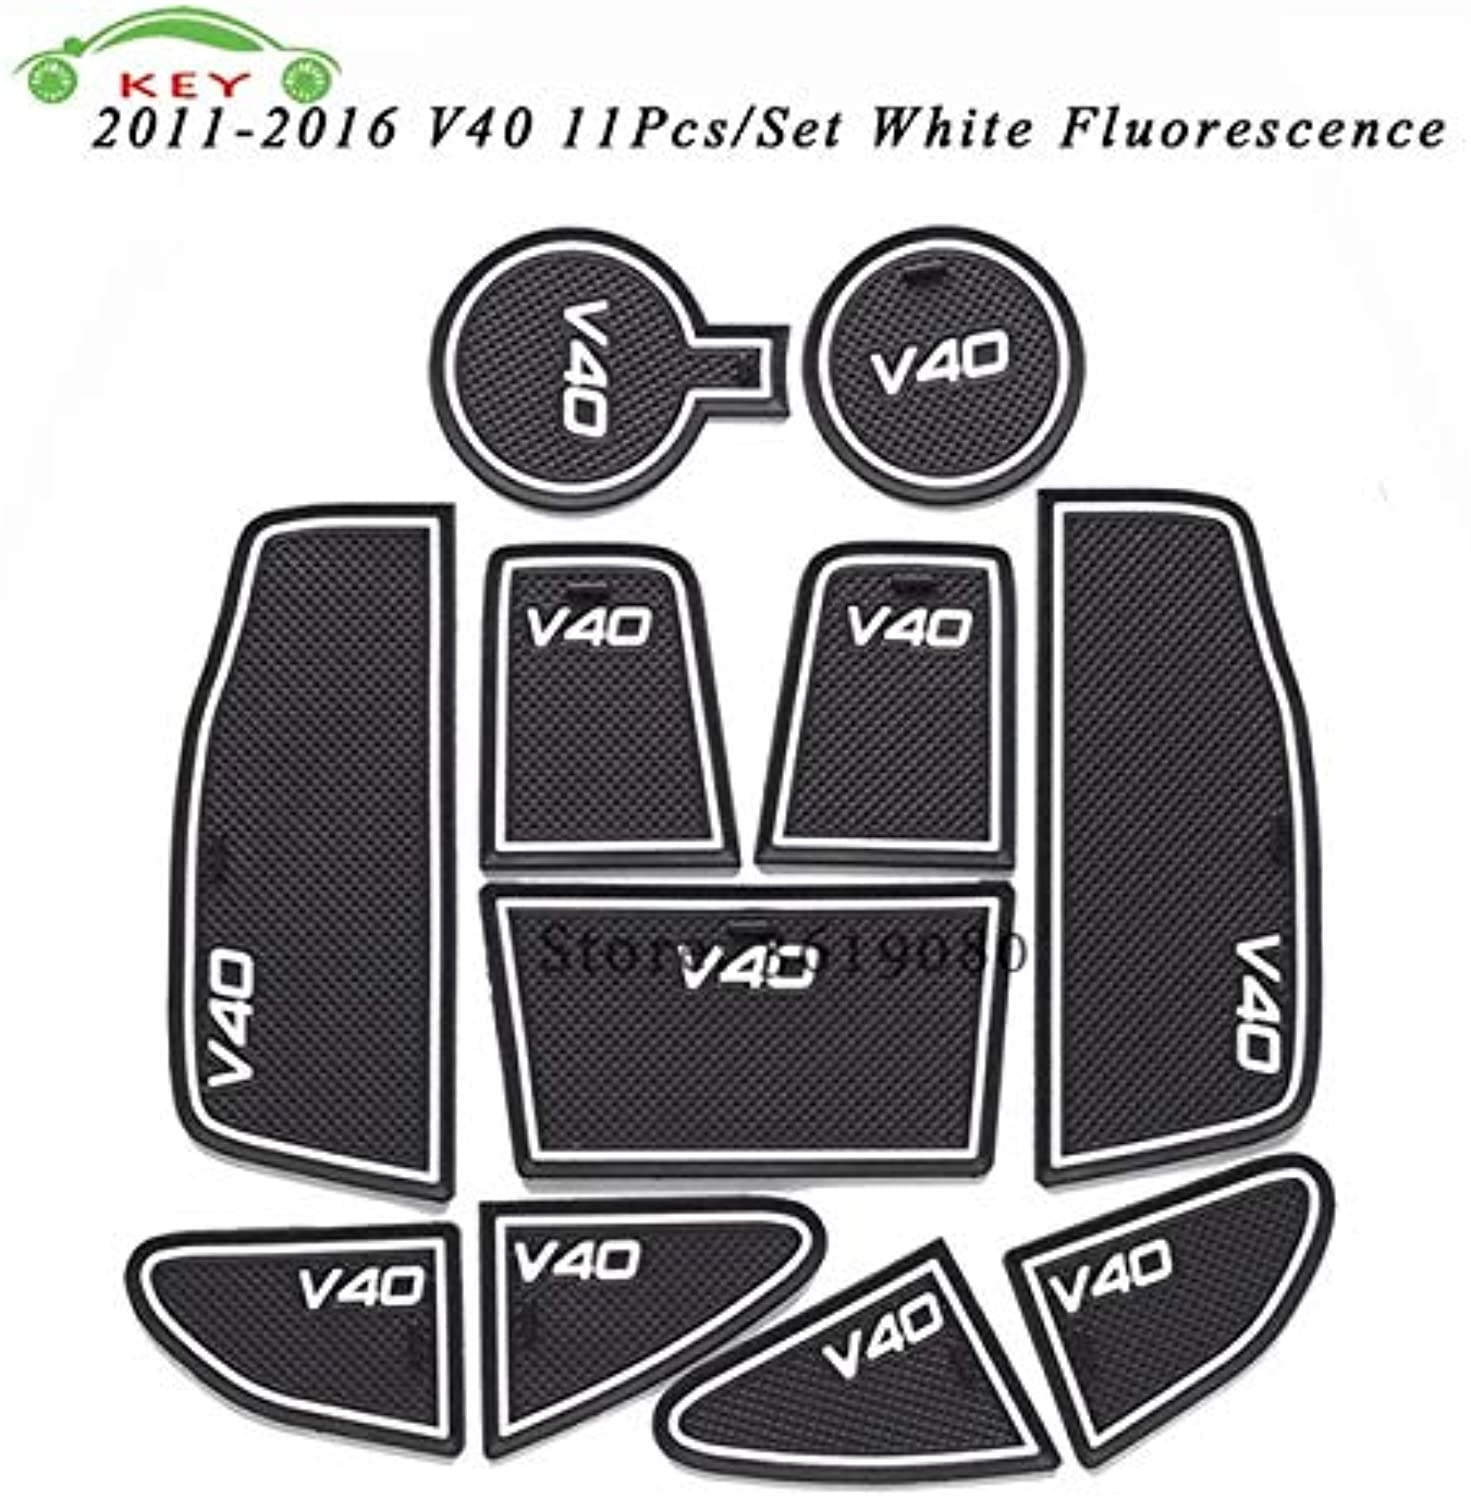 For Volvo V40 20112016 Car Gate Slot Mat Rubber AntiSlip Door Pad Auto Cup Holder Mat Car Interior Accessories Decoration  (color Name  White Fluorescence)